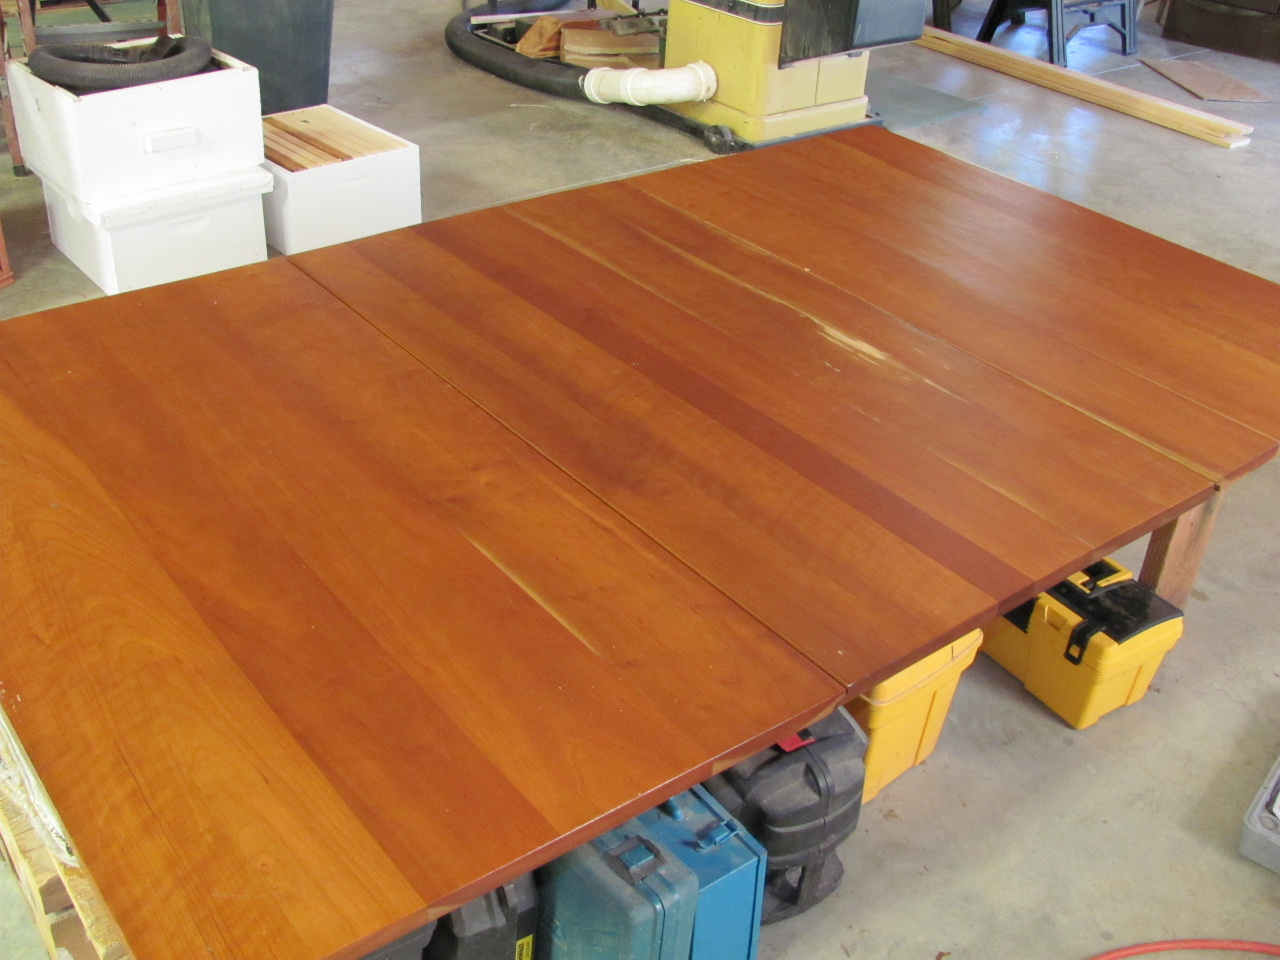 Wonderful image of Cherry drop leaf dining table with water damage to center section. I  with #AC521F color and 1280x960 pixels